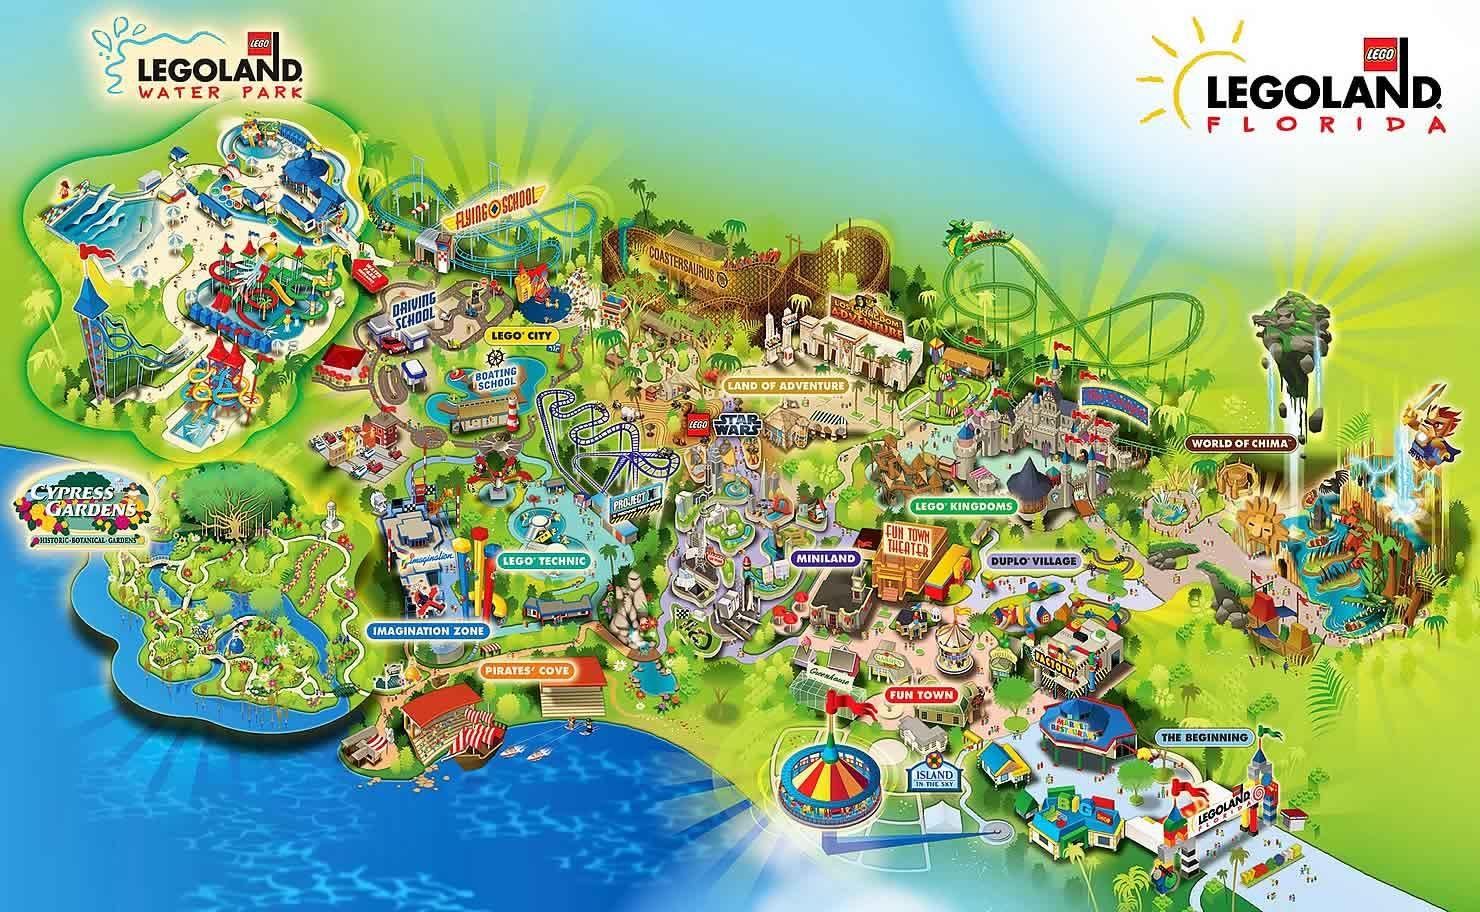 Legoland Usa Florida - Xdata.fr - Legoland Map Florida